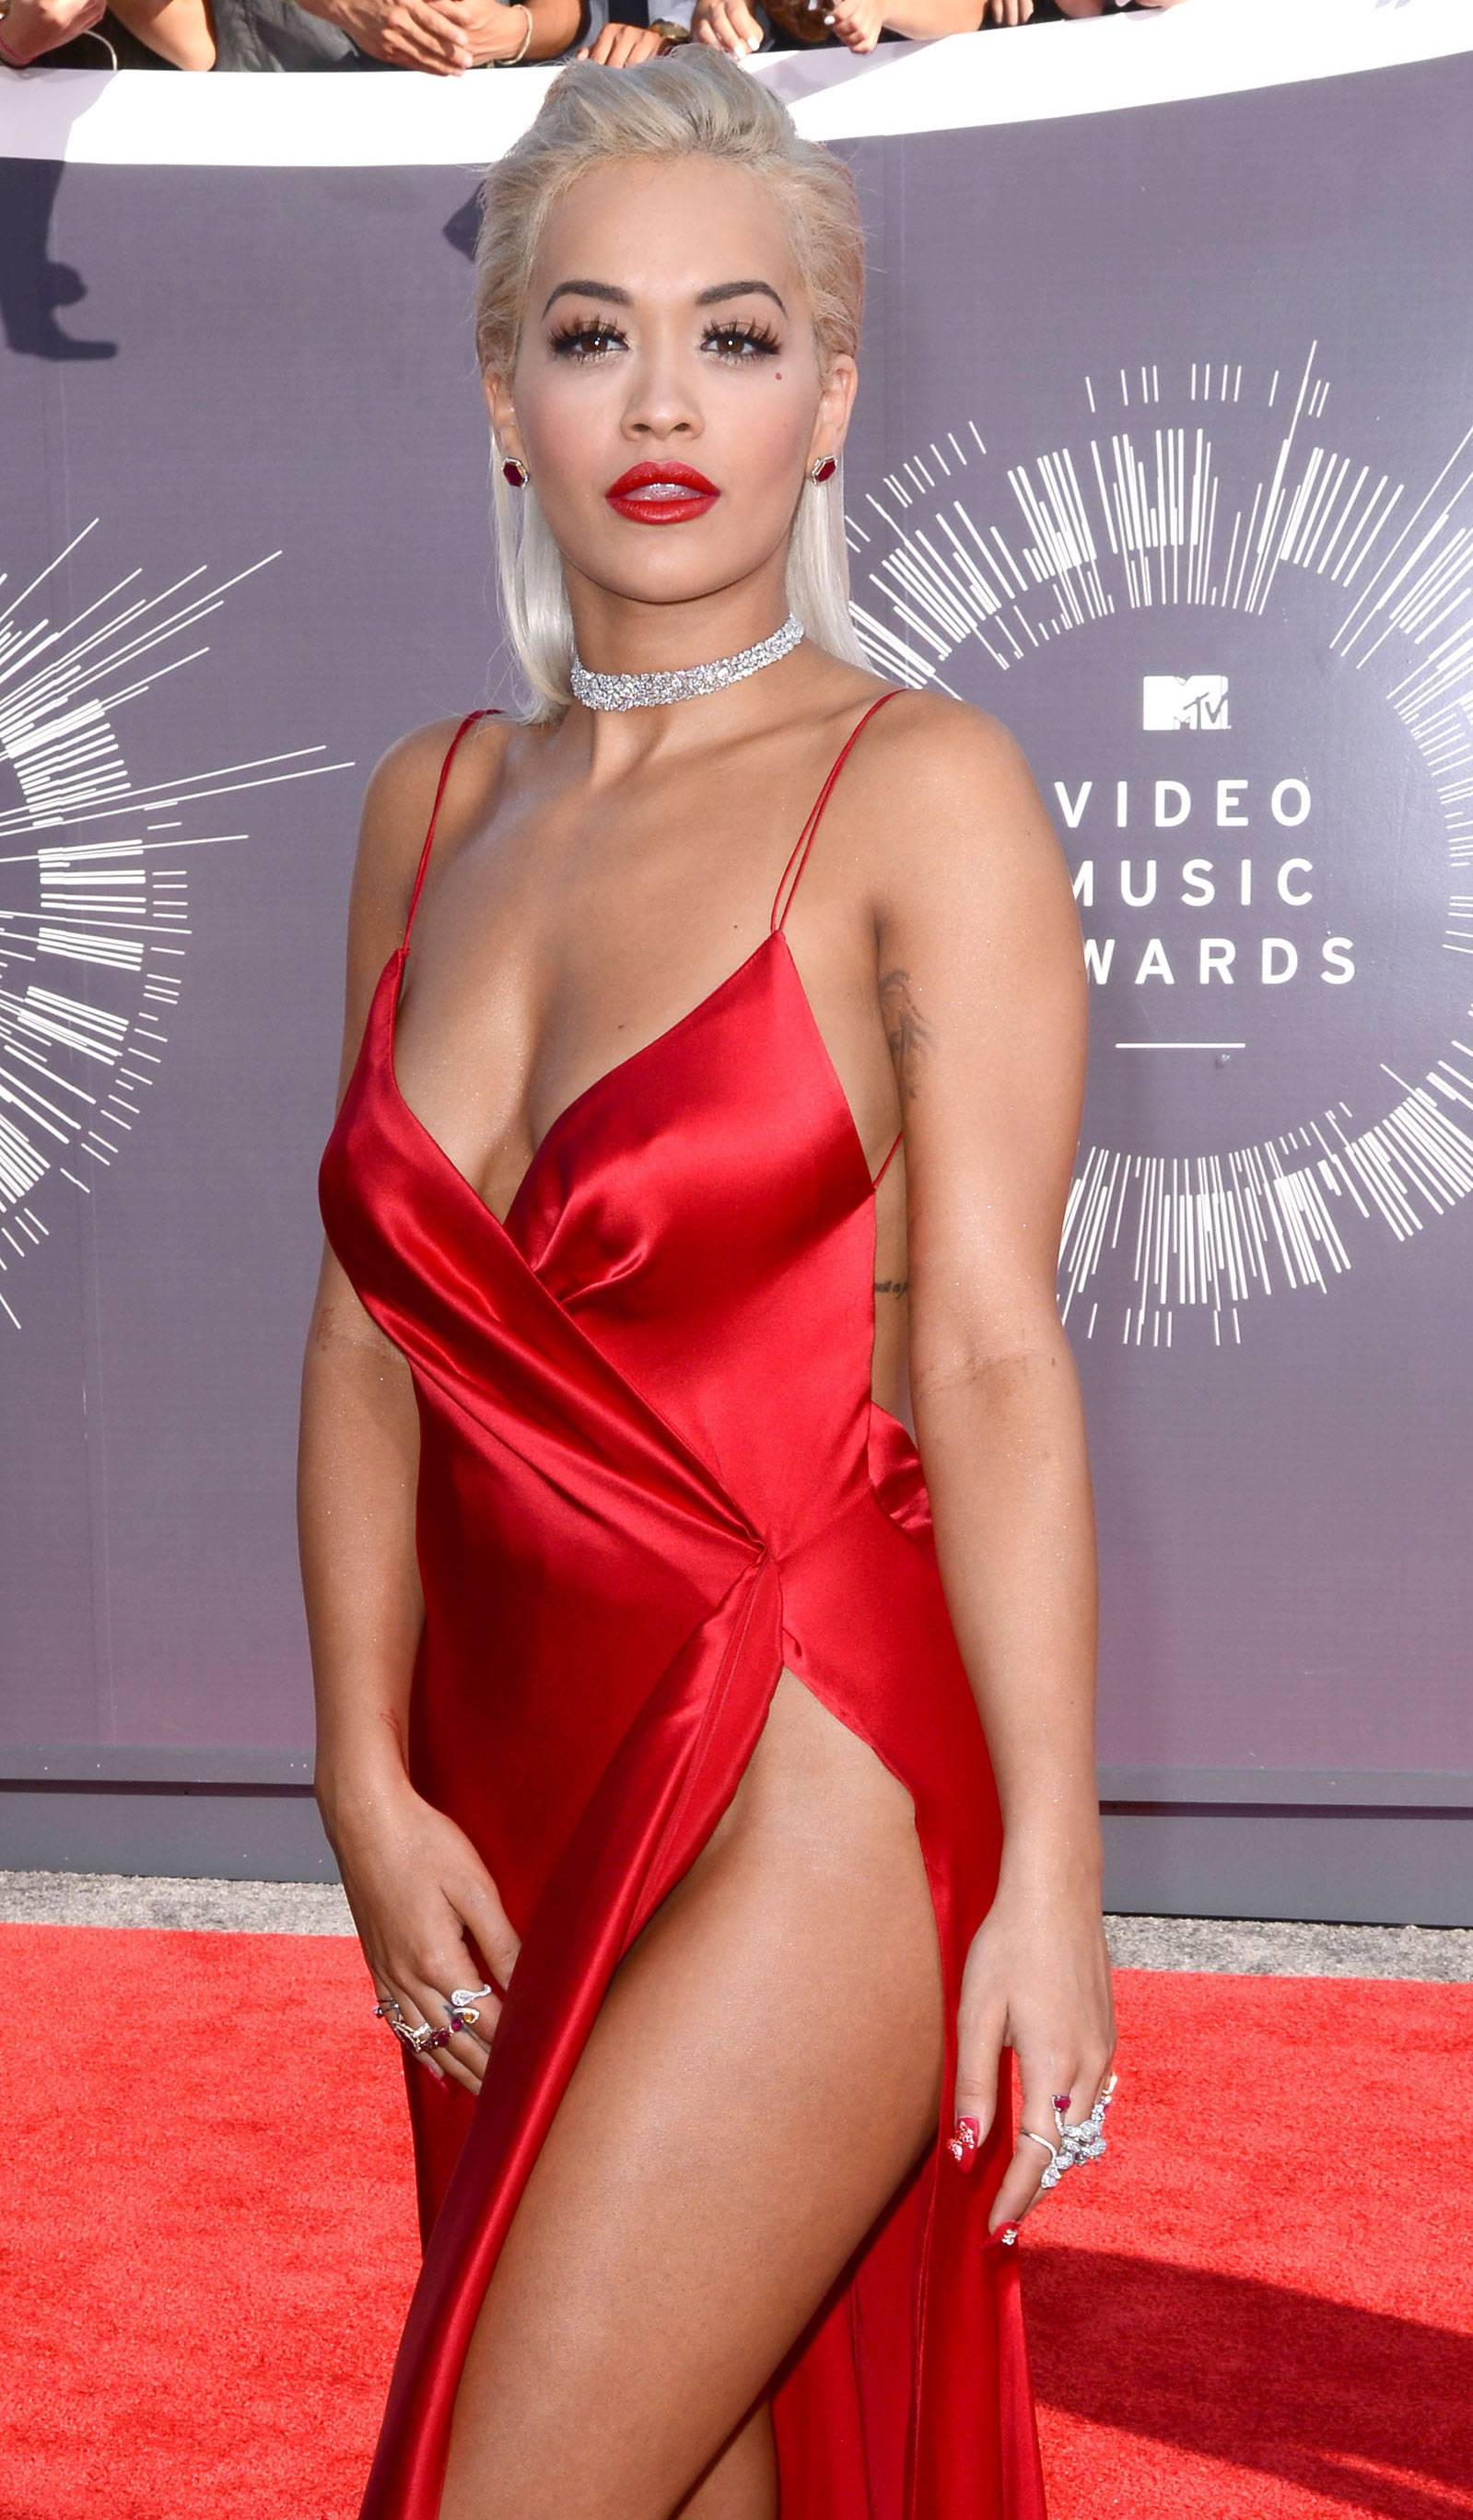 Daring to wear show off some leg, Rita Ora channels her inner silver screen siren in a silky red number on the 2014 VMA red carpet.